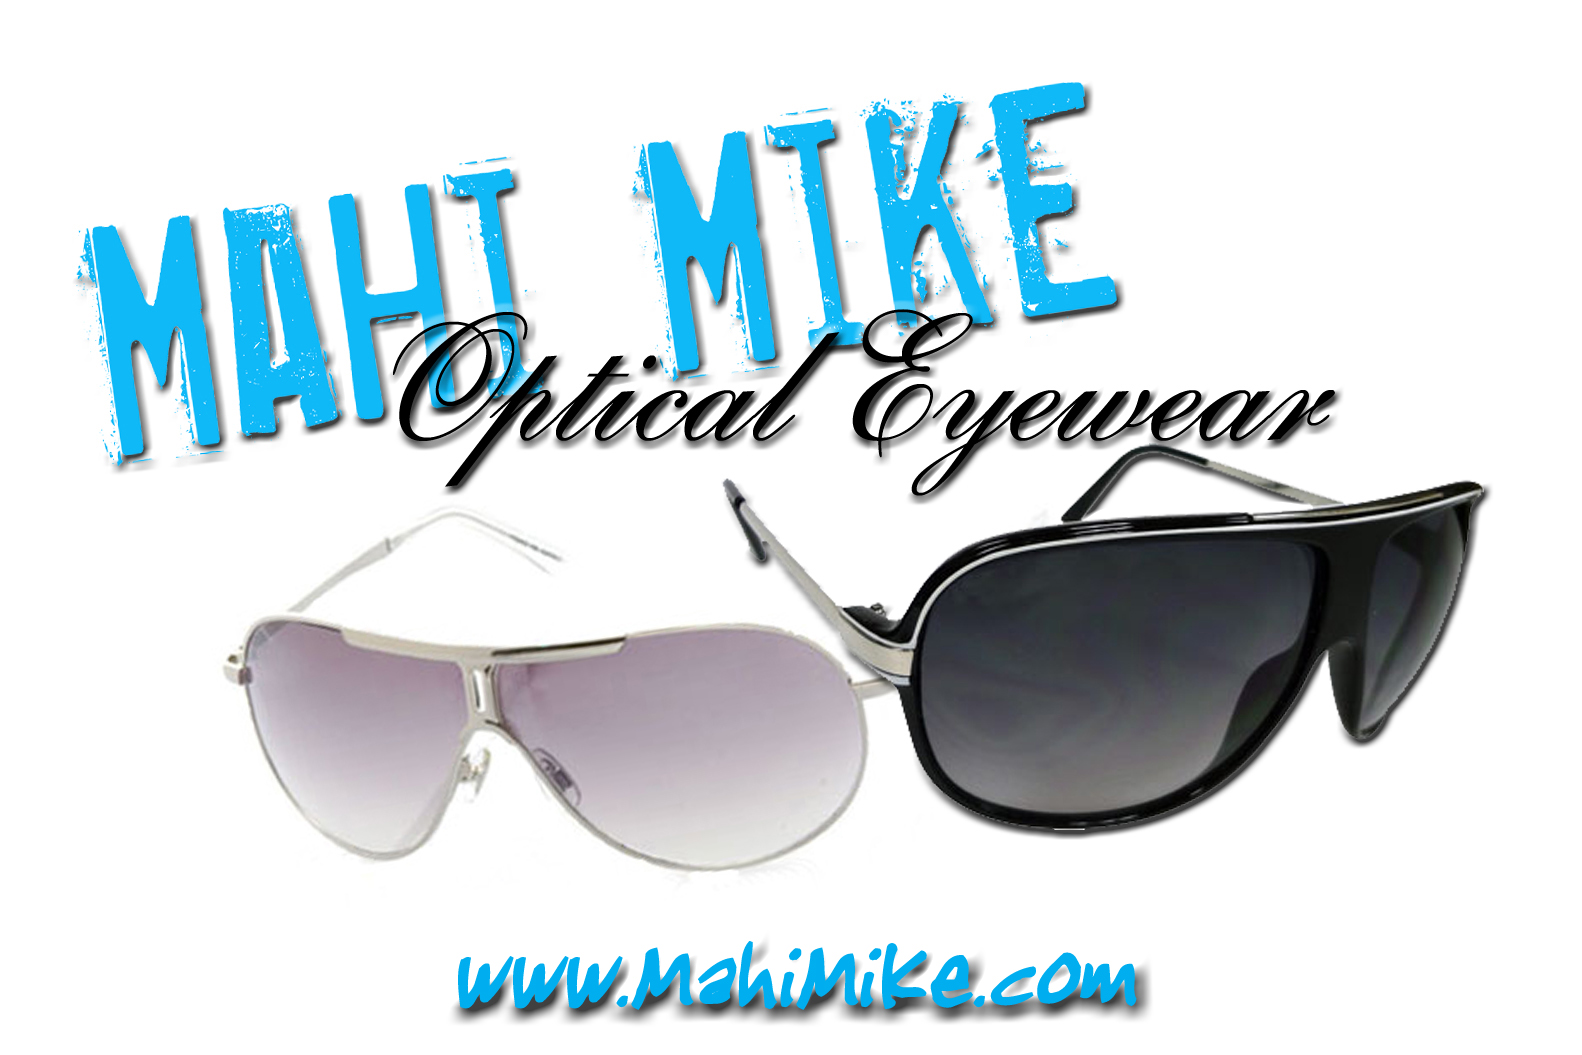 Alt= Mahi Mike sunglasses